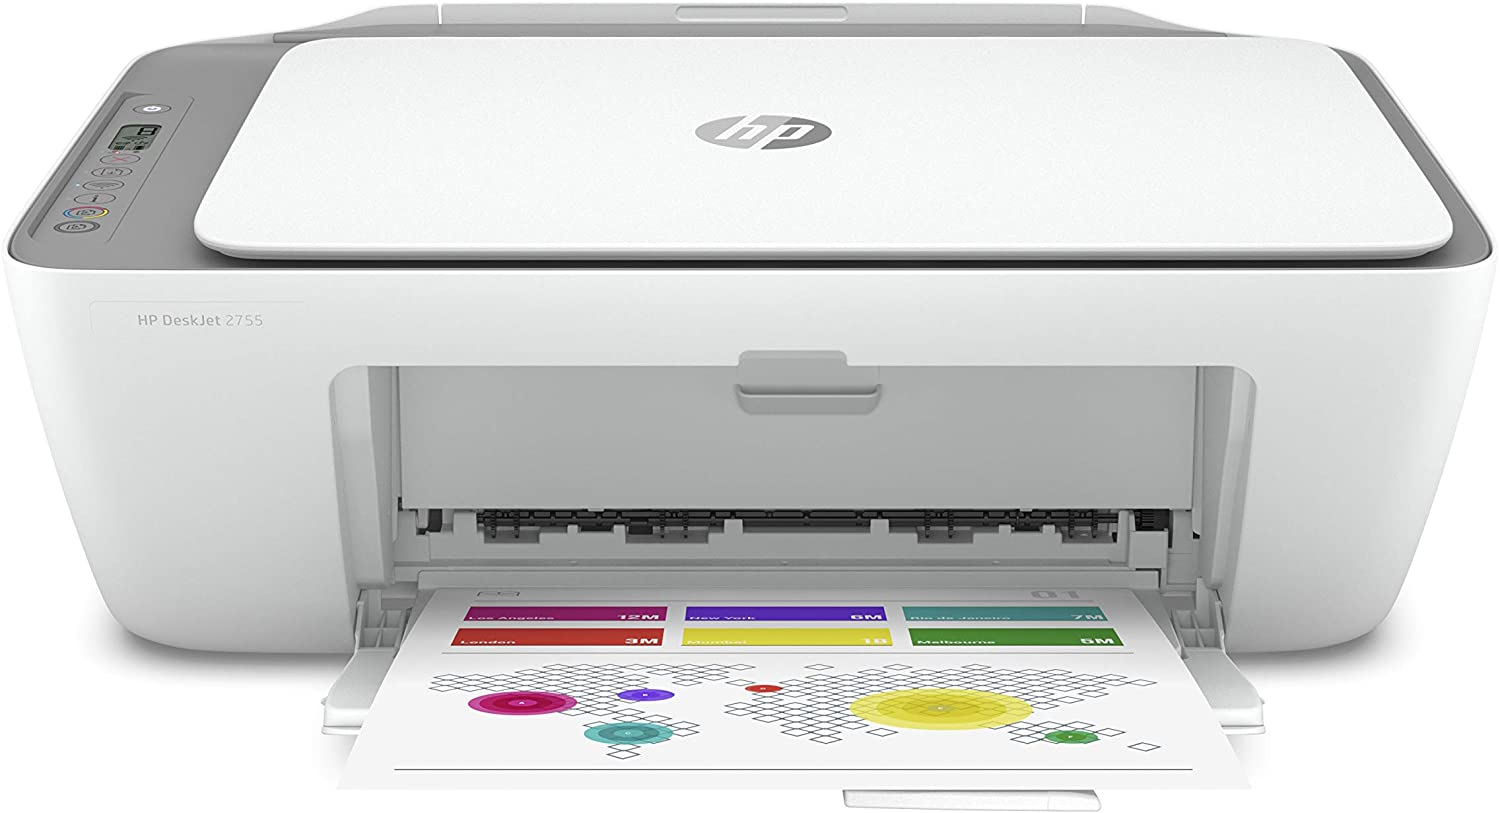 HP DeskJet 2755 Wireless All-in-One Printer, Mobile Print, Scan & Copy, HP Instant Ink Ready, Works with Alexa (3XV17A): Electronics